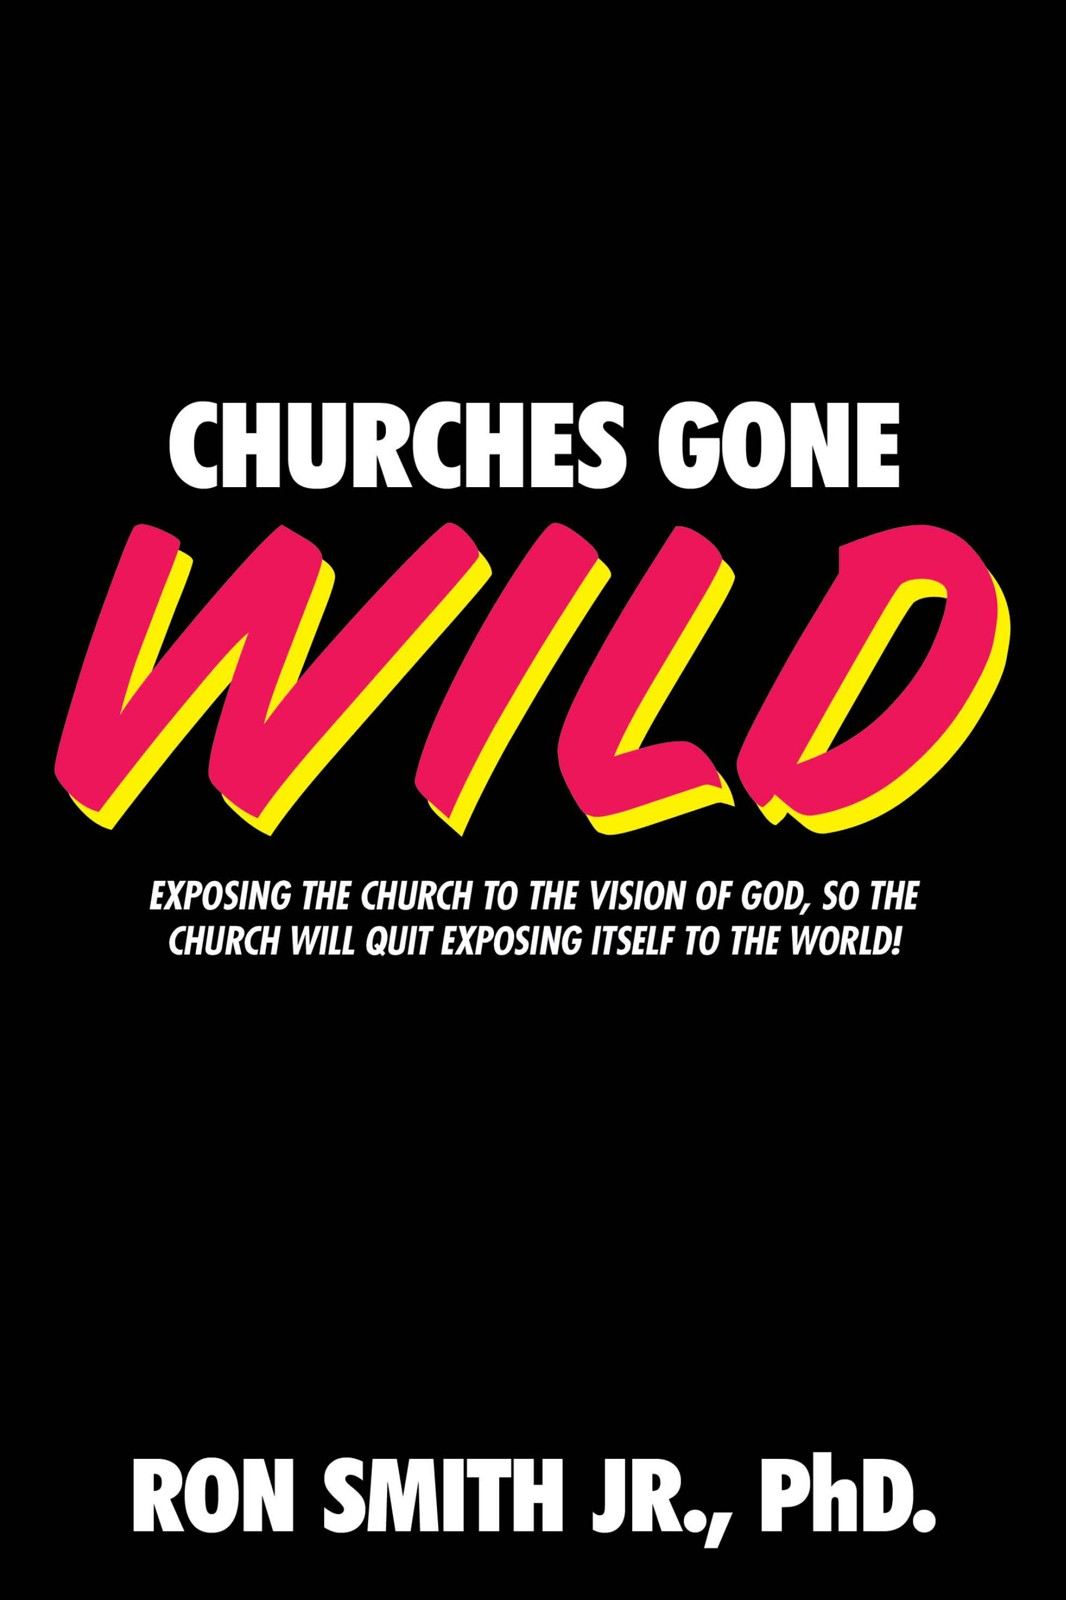 Churches Gone Wild